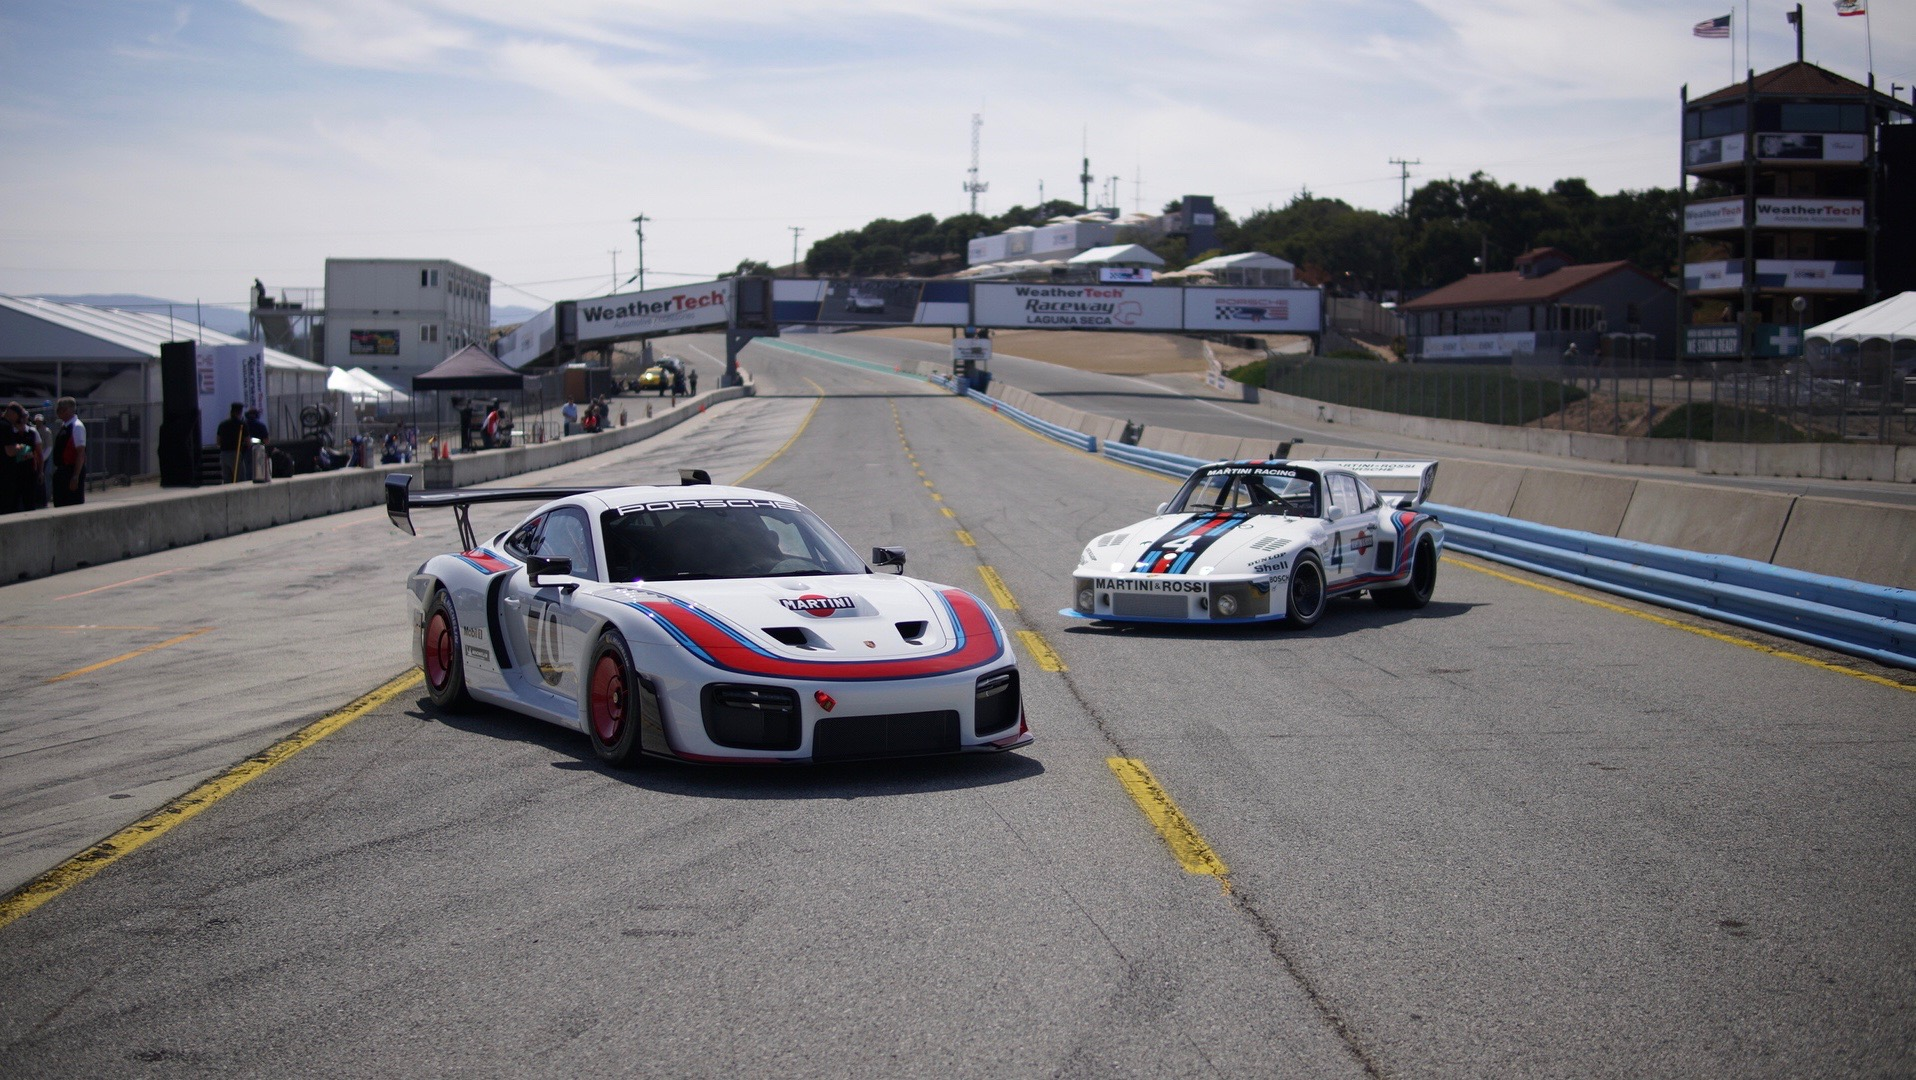 Revealed at Rennsport Reunion VI, the new 935, just like its forebear, sports the iconic Martini Racing colours.